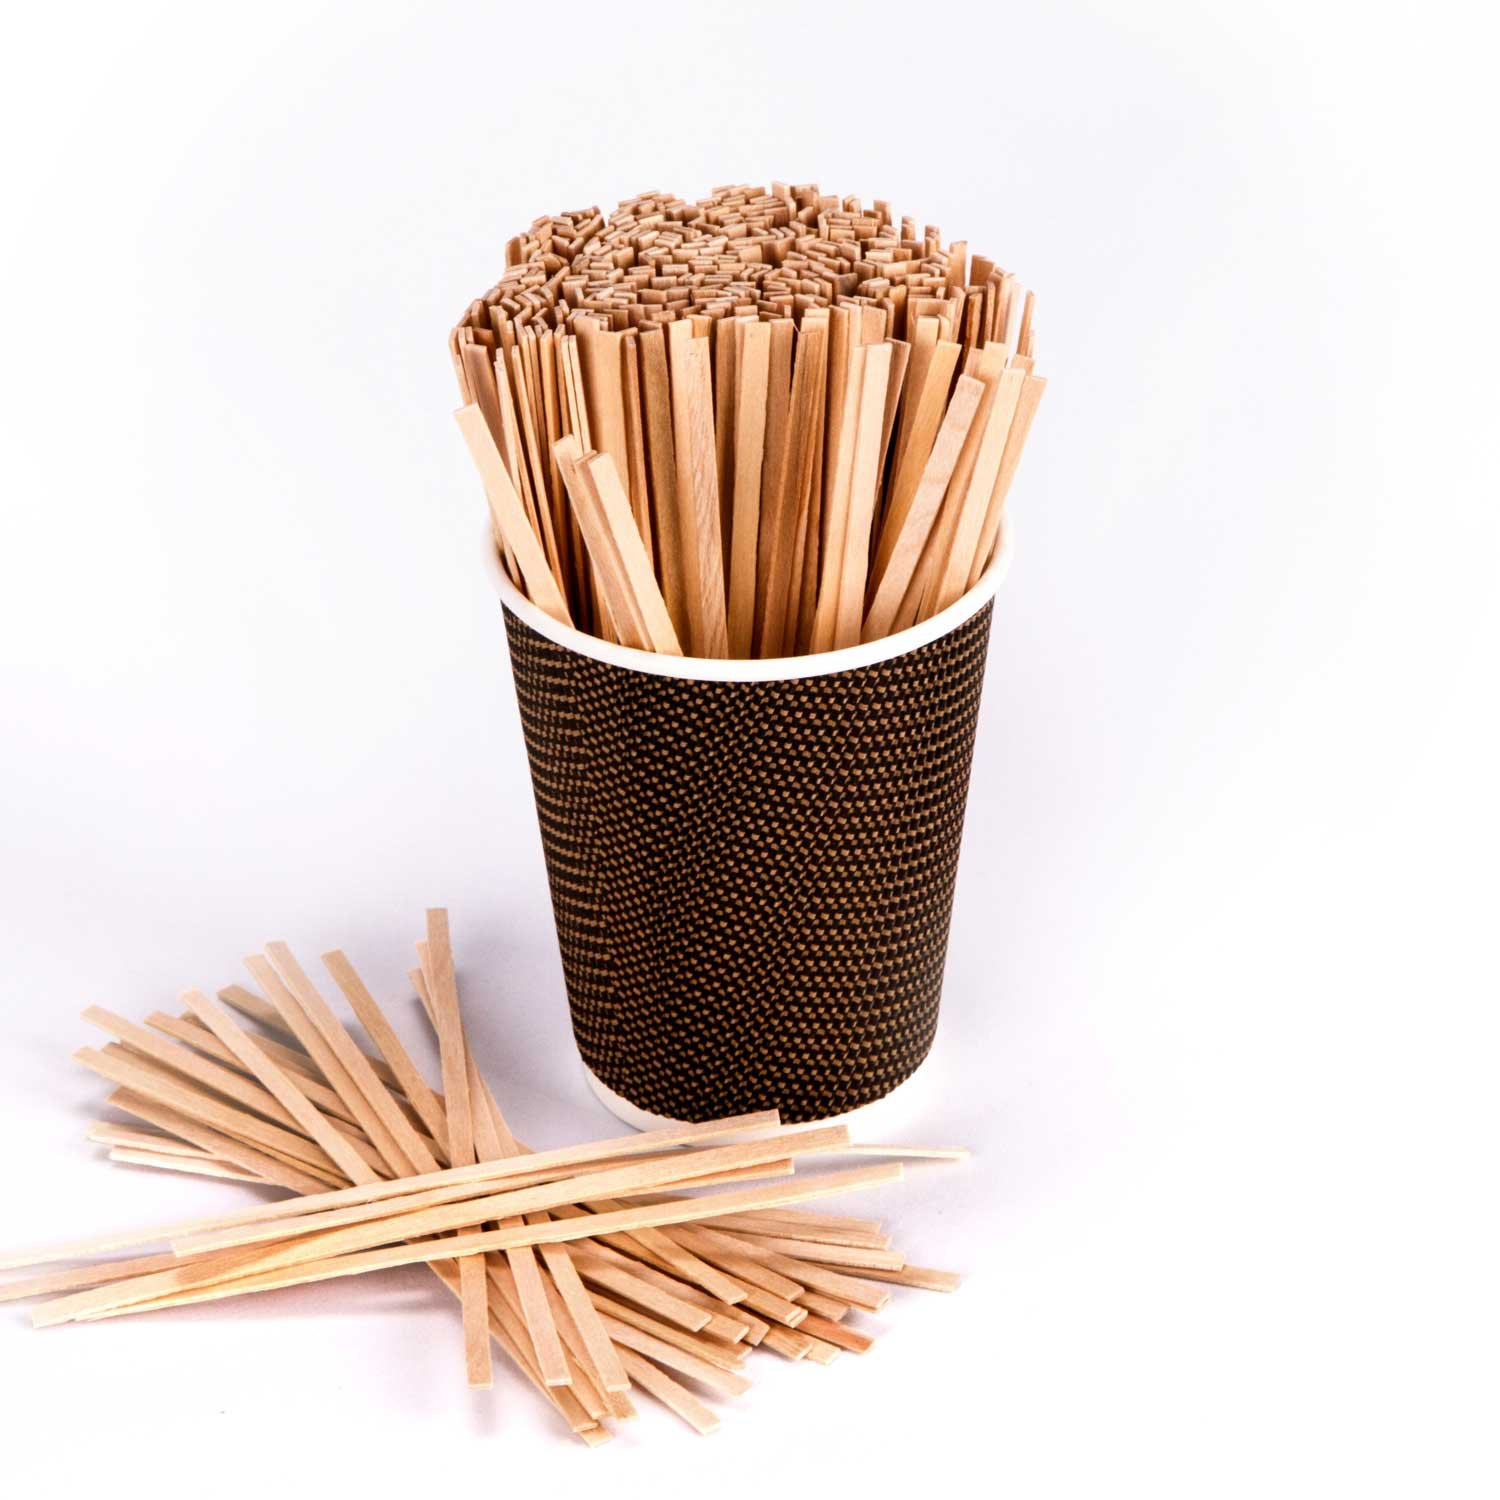 Royal 1000 Count Wood Coffee Beverage Stirrers, 5.5'' by Royal (Image #5)